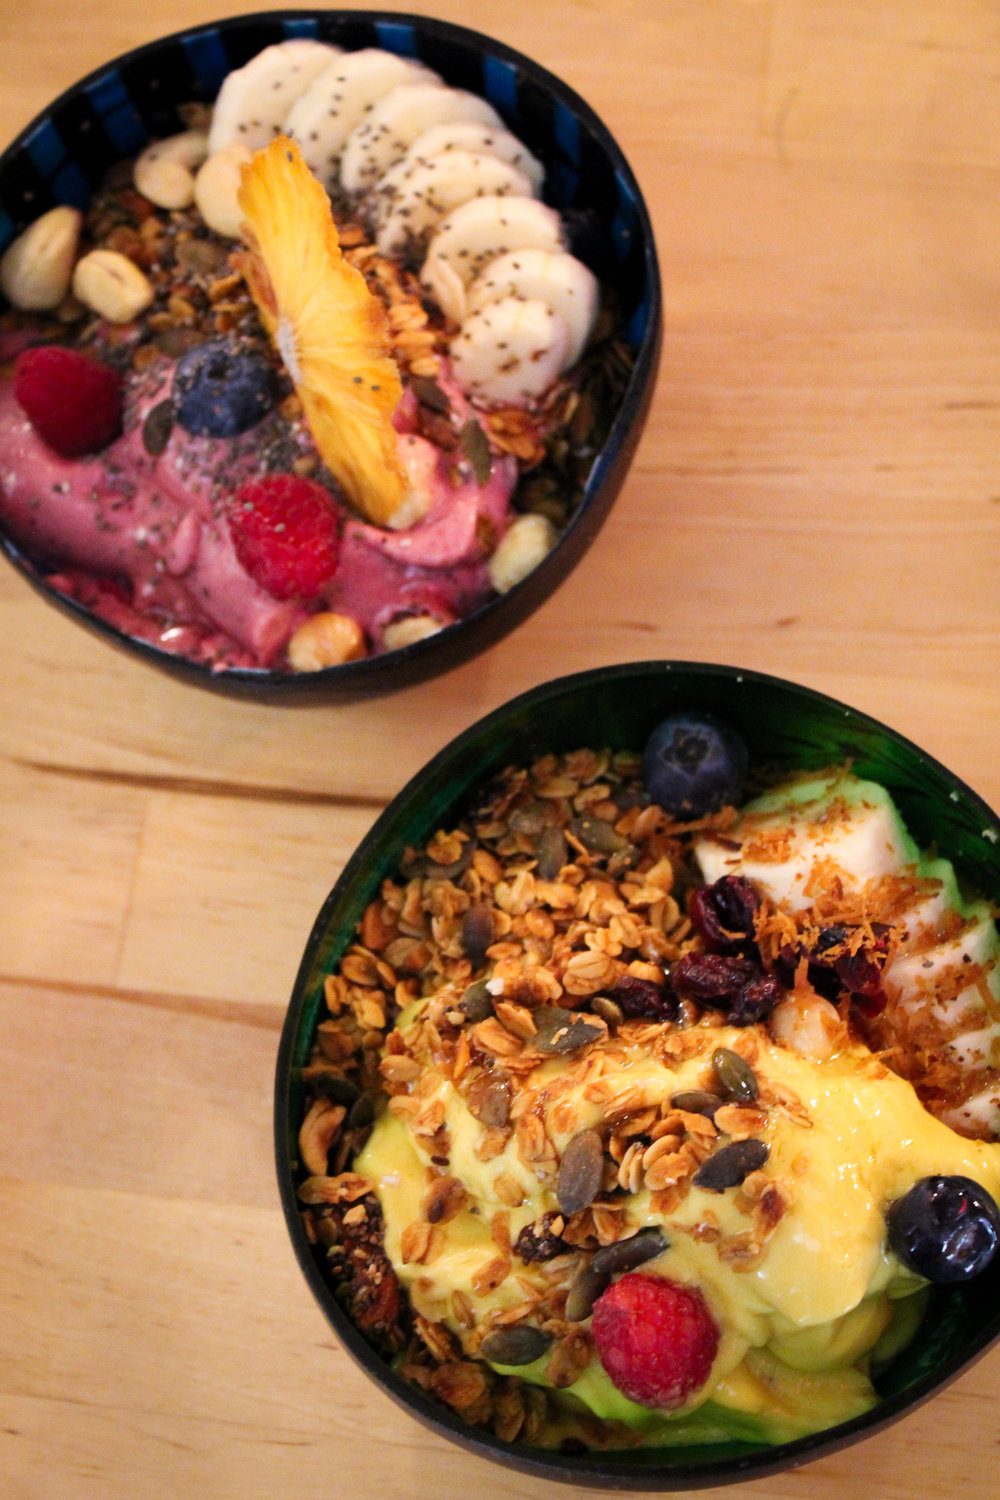 dragon fruit (top left) and Indian lassy (bottom right) smoothie bowls at Eat My Trip